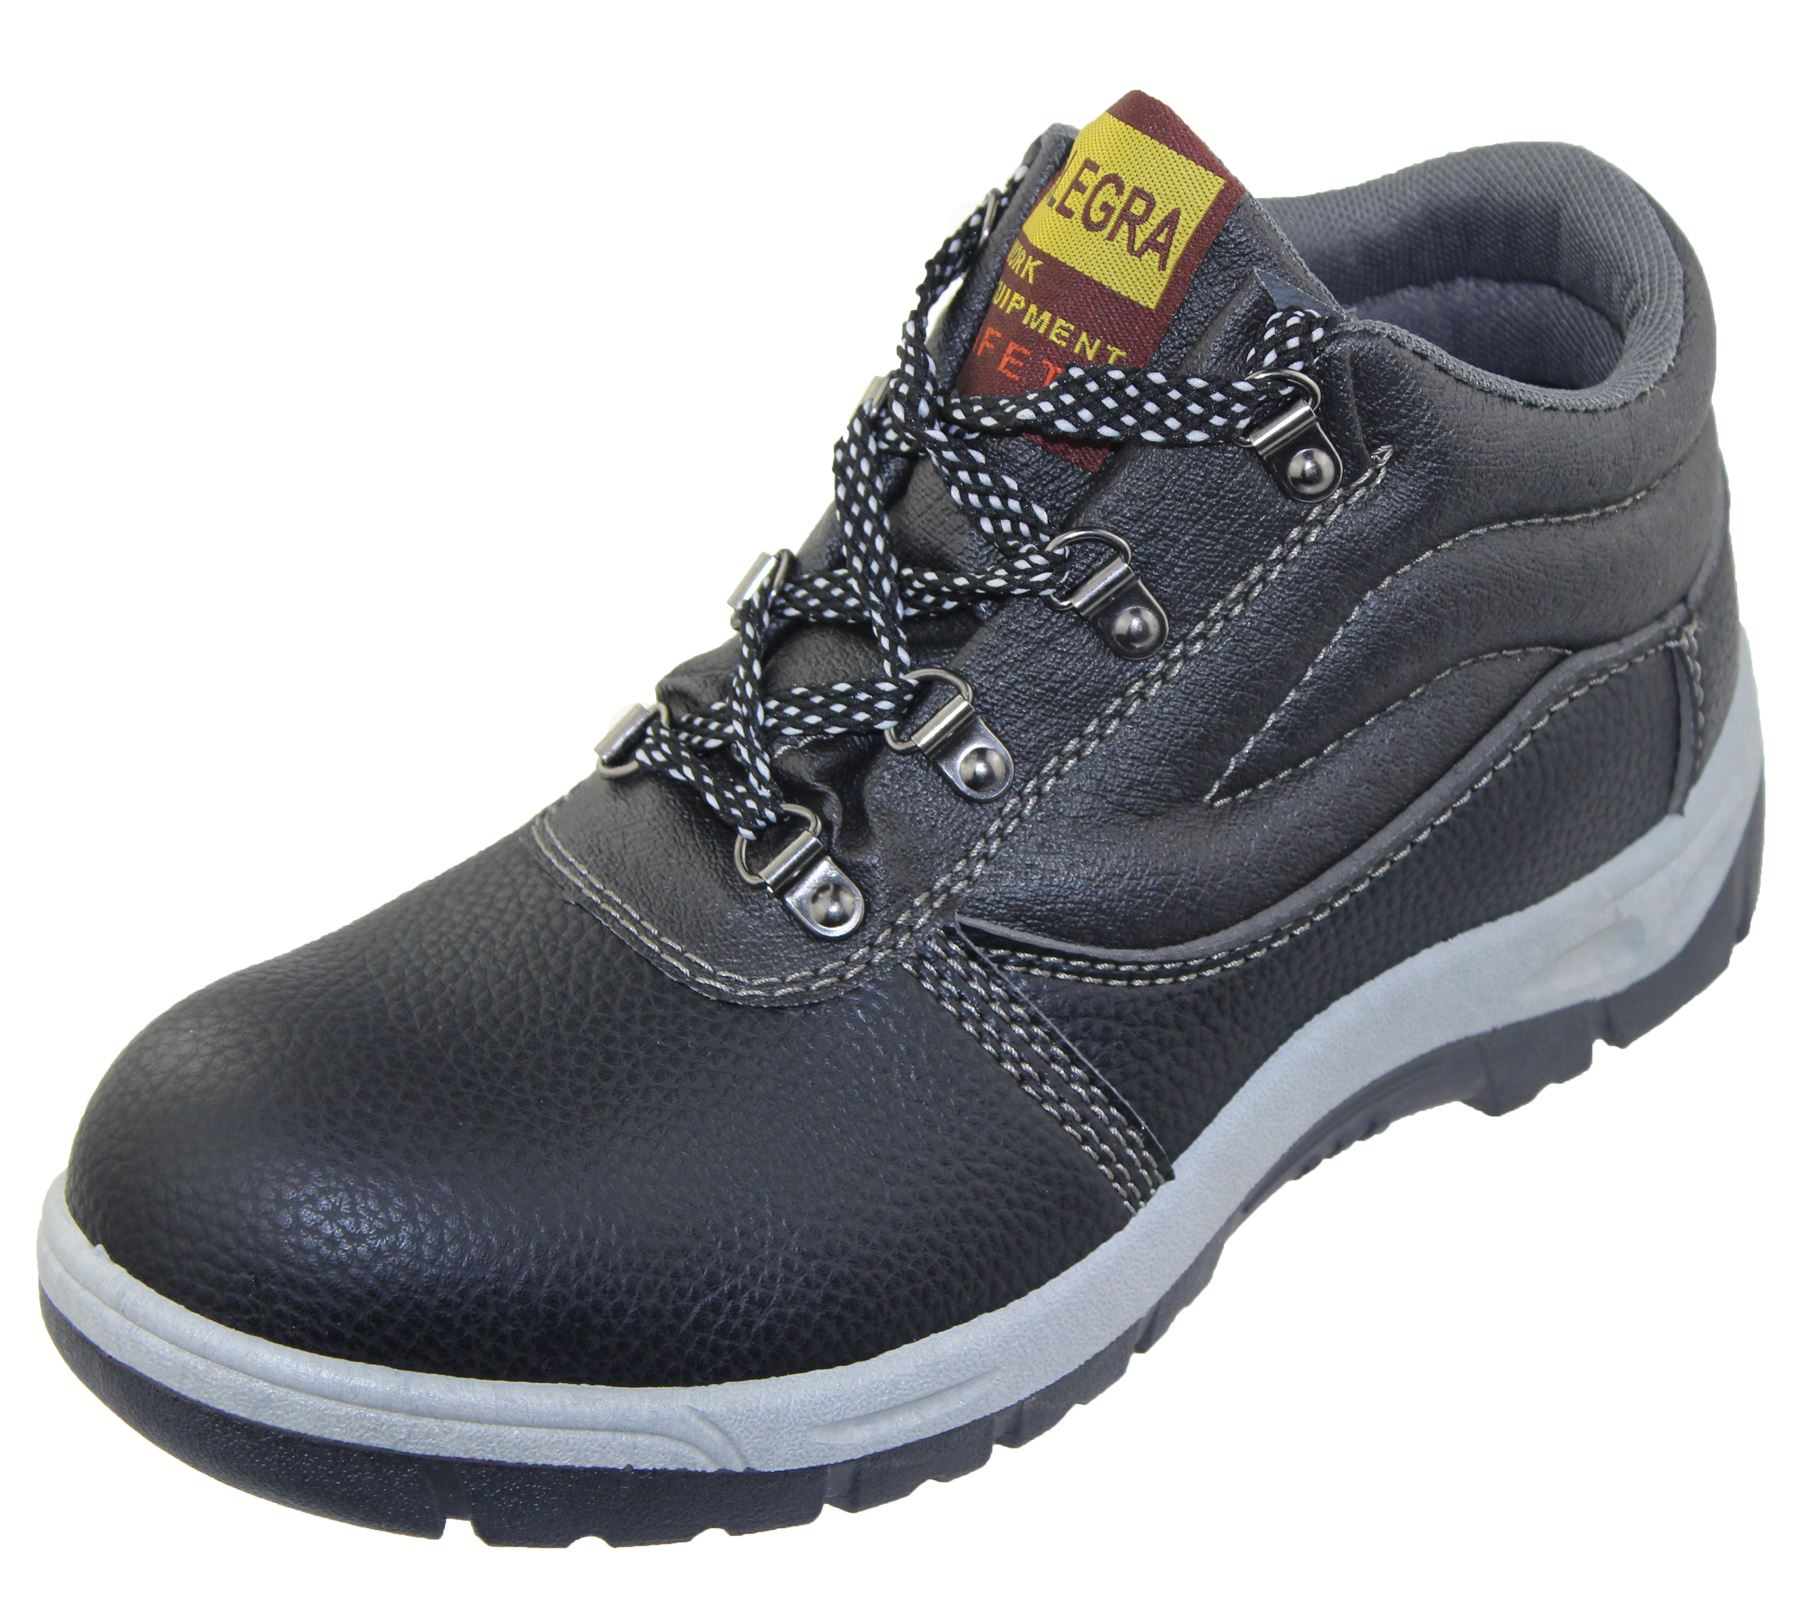 Mens Steel Toe Cap Work Boots Winter Combat Hiking High Top Ankle Shoes Size